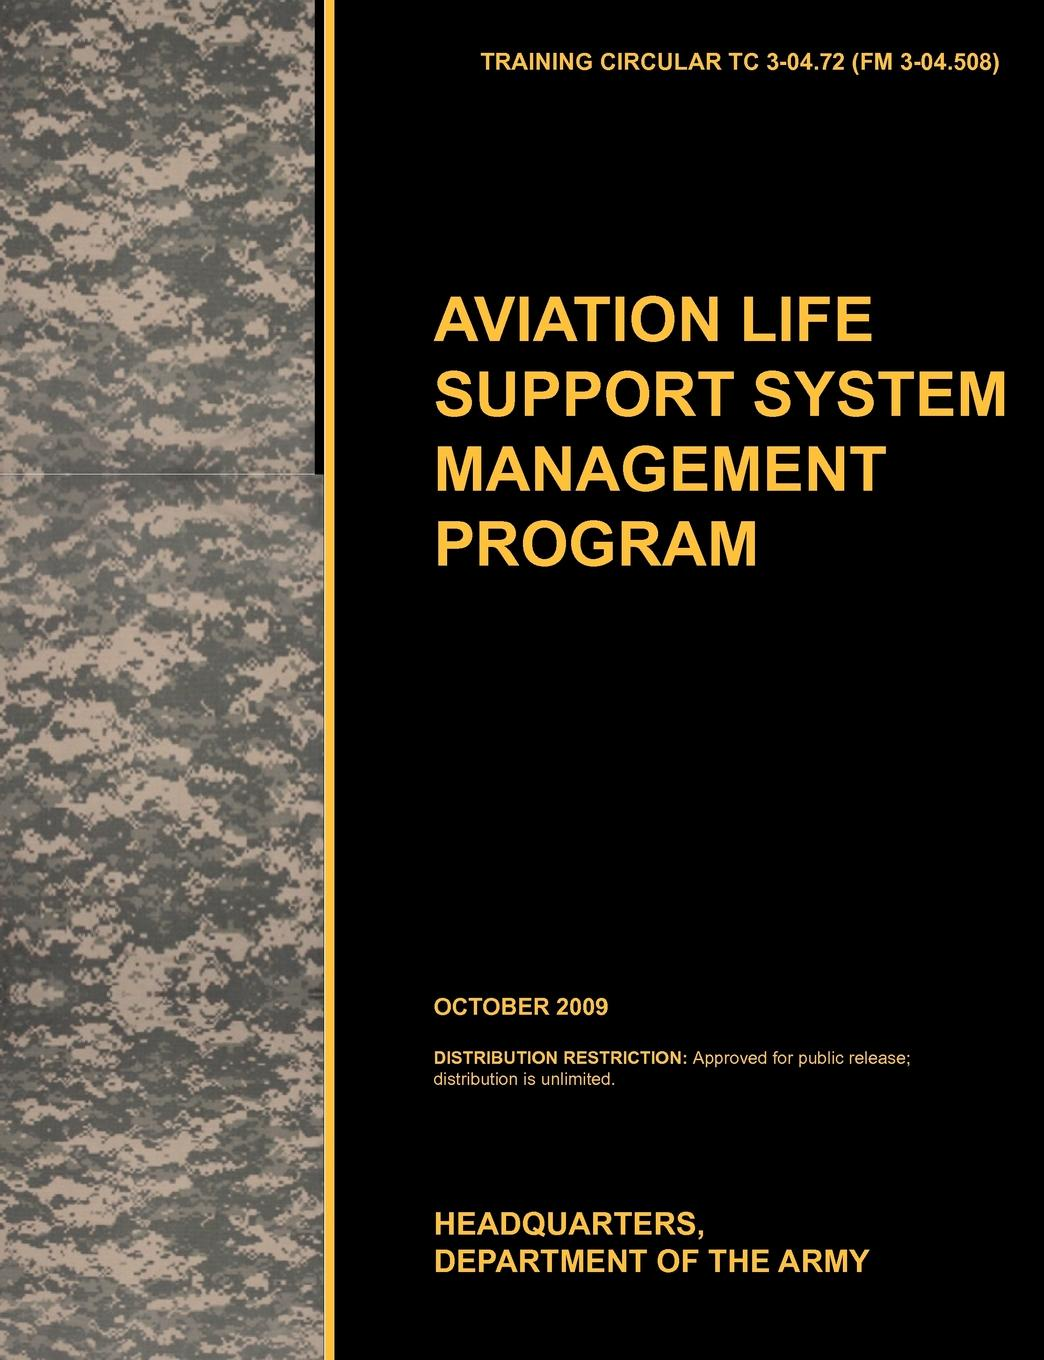 U. S. Army Training and Doctrine Command, Army Aviation Center of Excellence, U. S. Department of the Aviation Life Support System Management Program. The Official U.S. Army Training Circular Tc 3-04.72 (FM 3-04.508) (October 2009) department of the army u s army corps of engineers water resource policies and authorities incorporating sea level change considerations in civil works programs